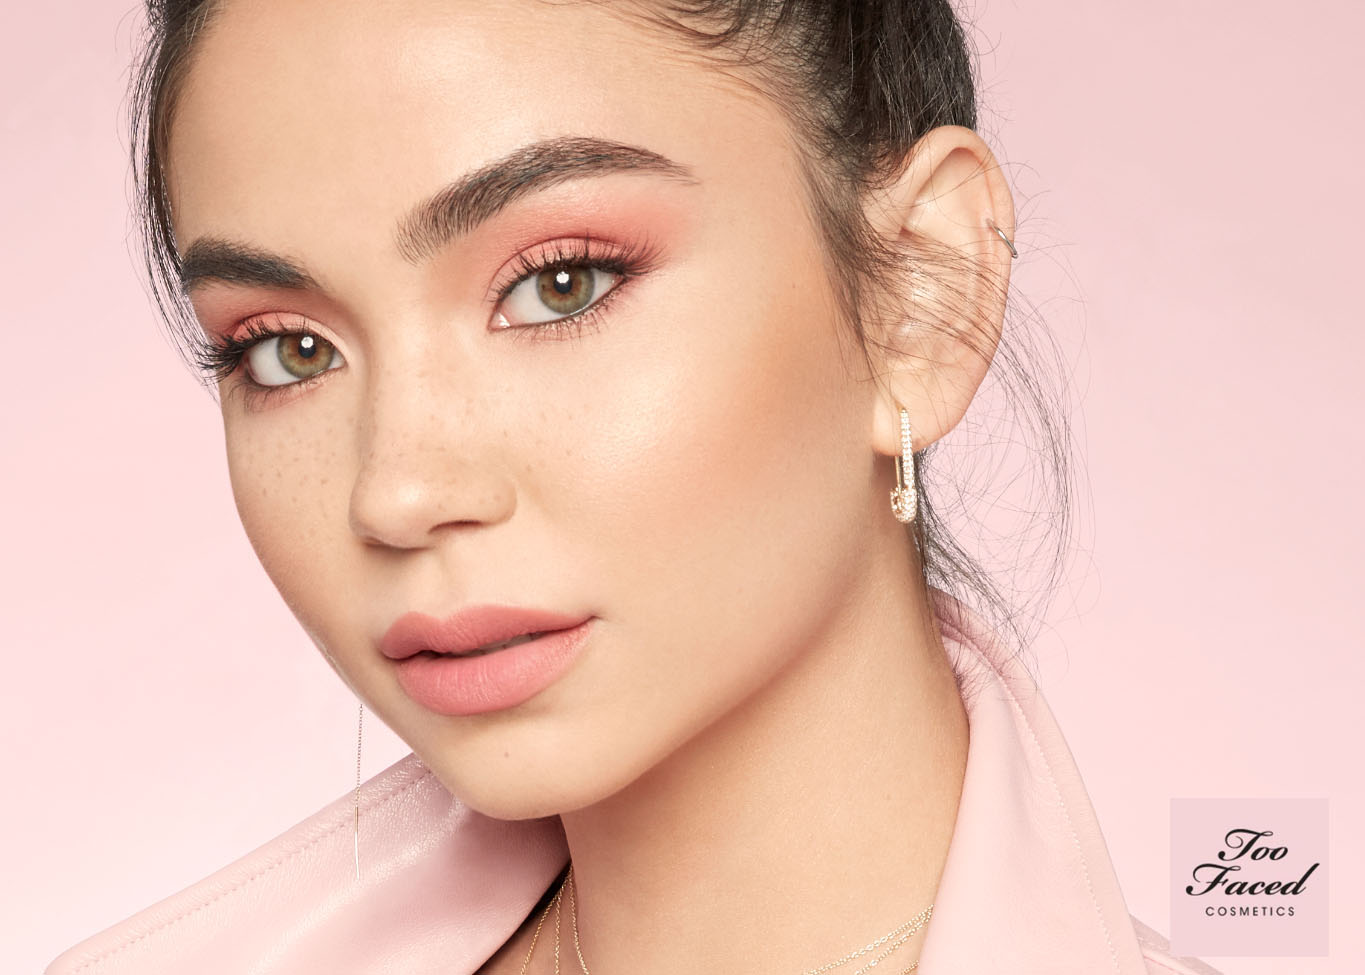 TooFaced_Look_01_Christina_0065_v2_mt_2.jpg